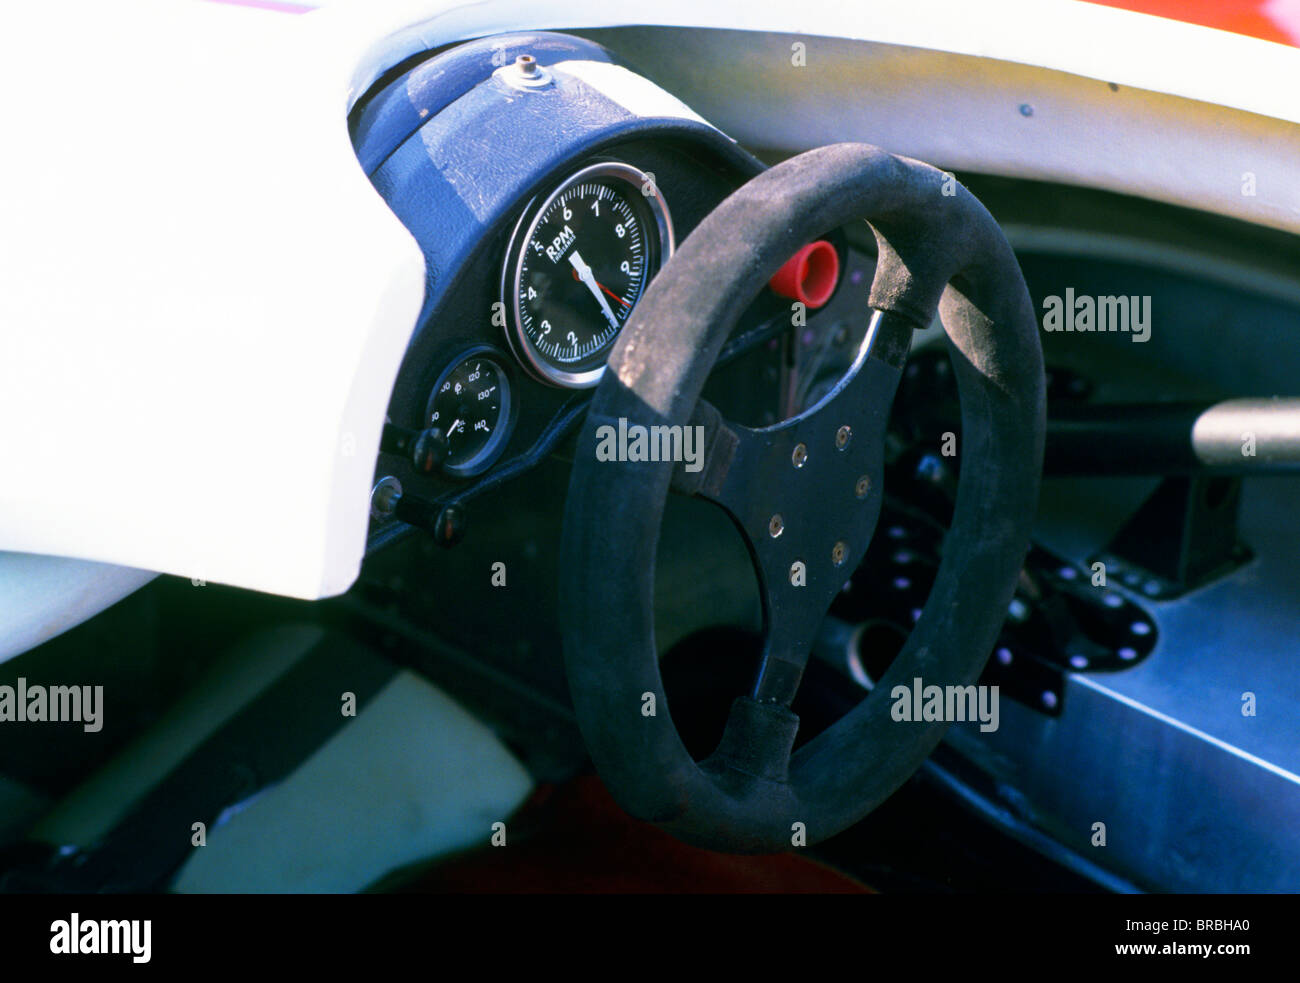 Inside view of the cockpit of a racing car with dials